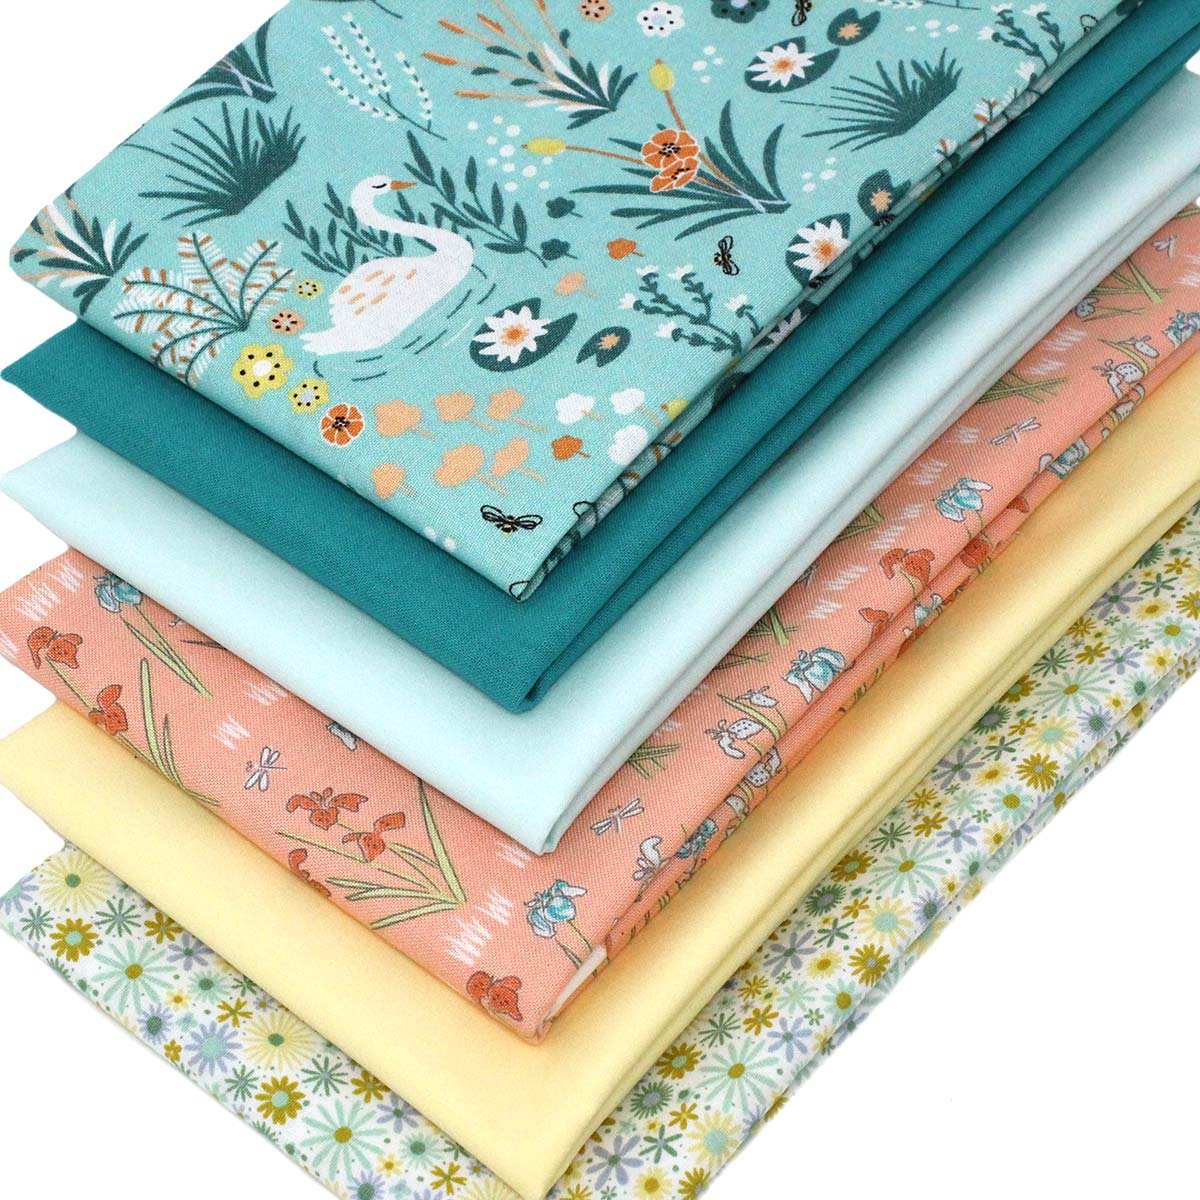 Green Solid Fat Quarters Fabric Bundles Pre-Cut Quilting Fabric for Sewing Crafting,18x22